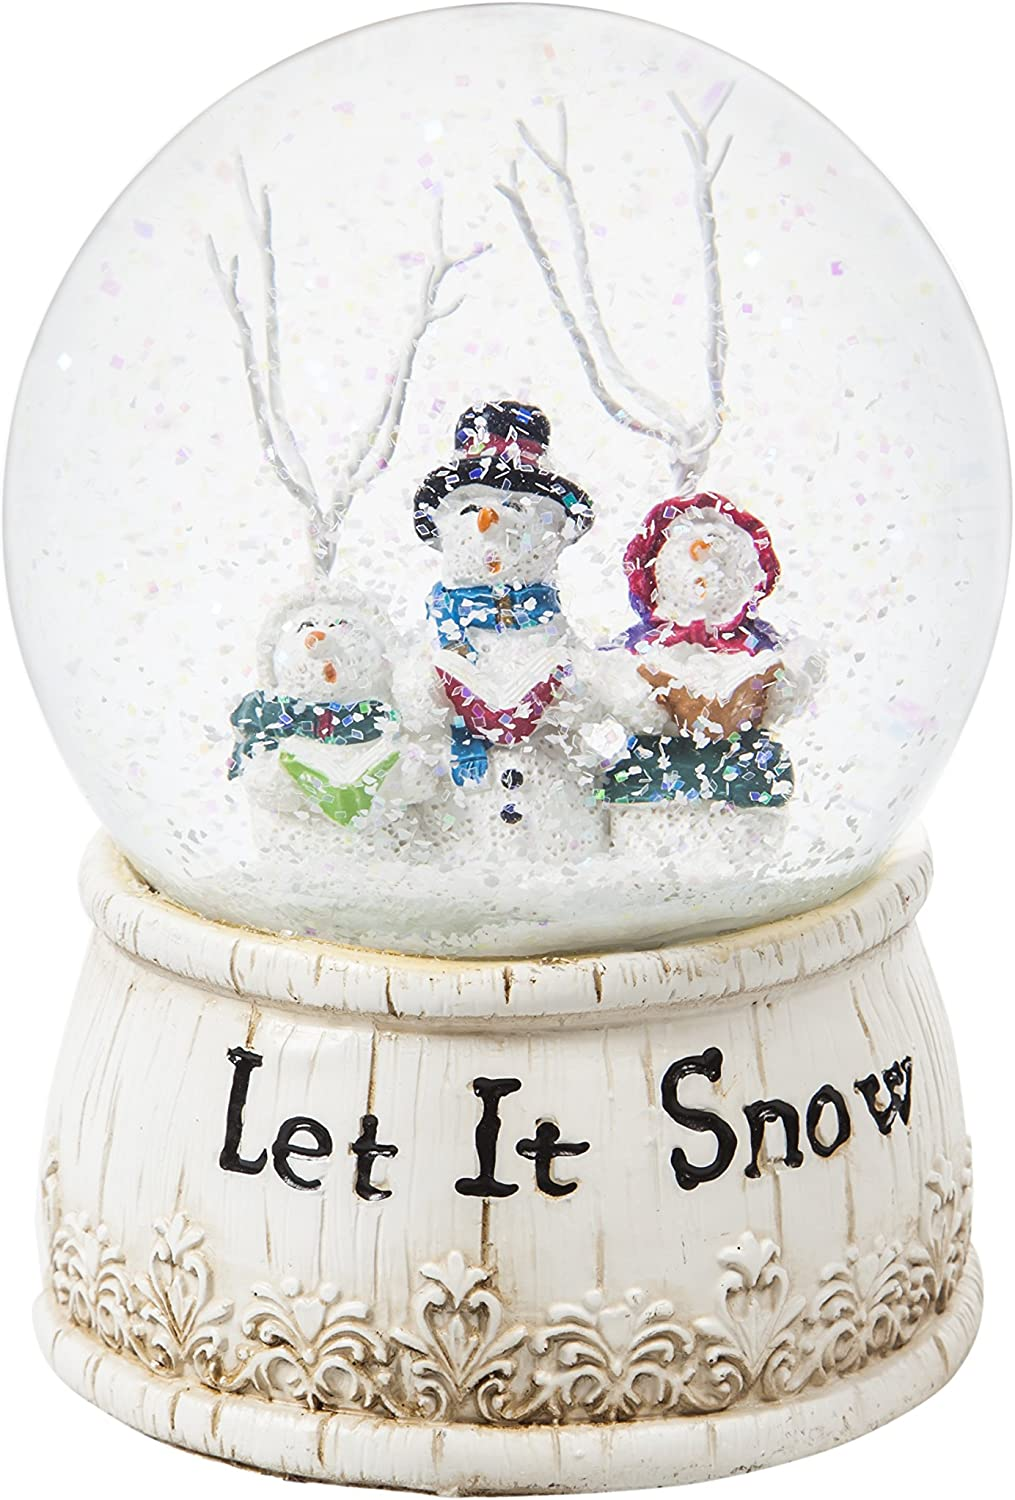 Cypress Home Beautiful Christmas Let it Snow Water Globe Table Top Décor - 4 x 6 x 4 Inches Indoor/Outdoor Decoration for Homes, Yards and Gardens